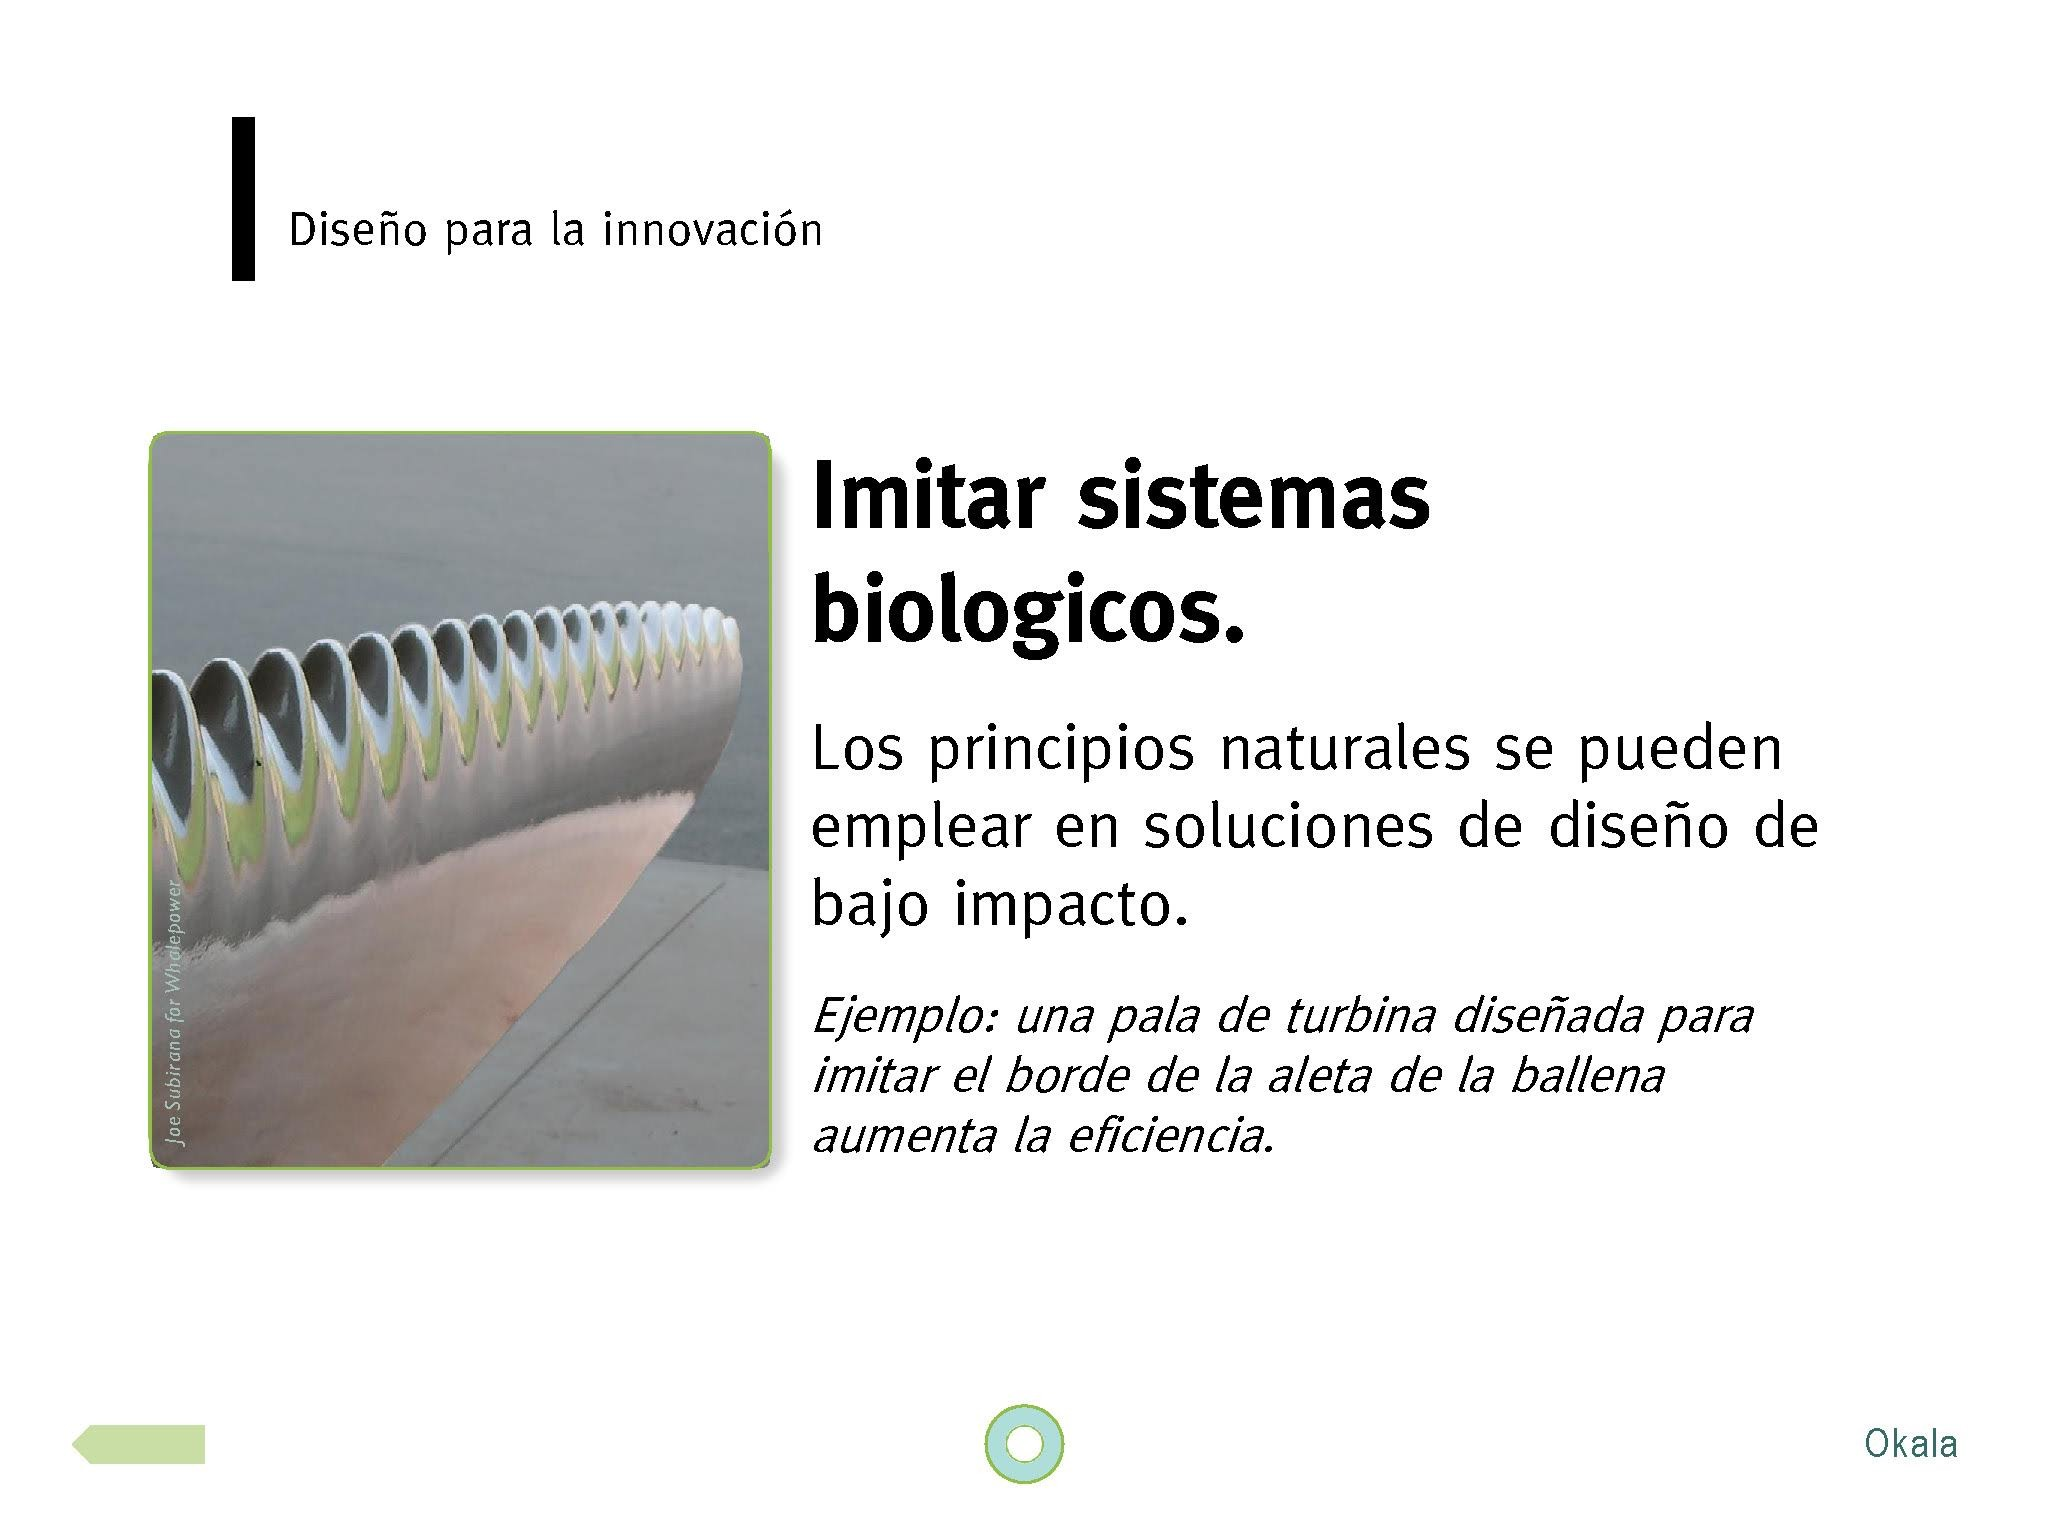 okala-ecodesign-strategy-guide-2012-spanish.new_page_06-1